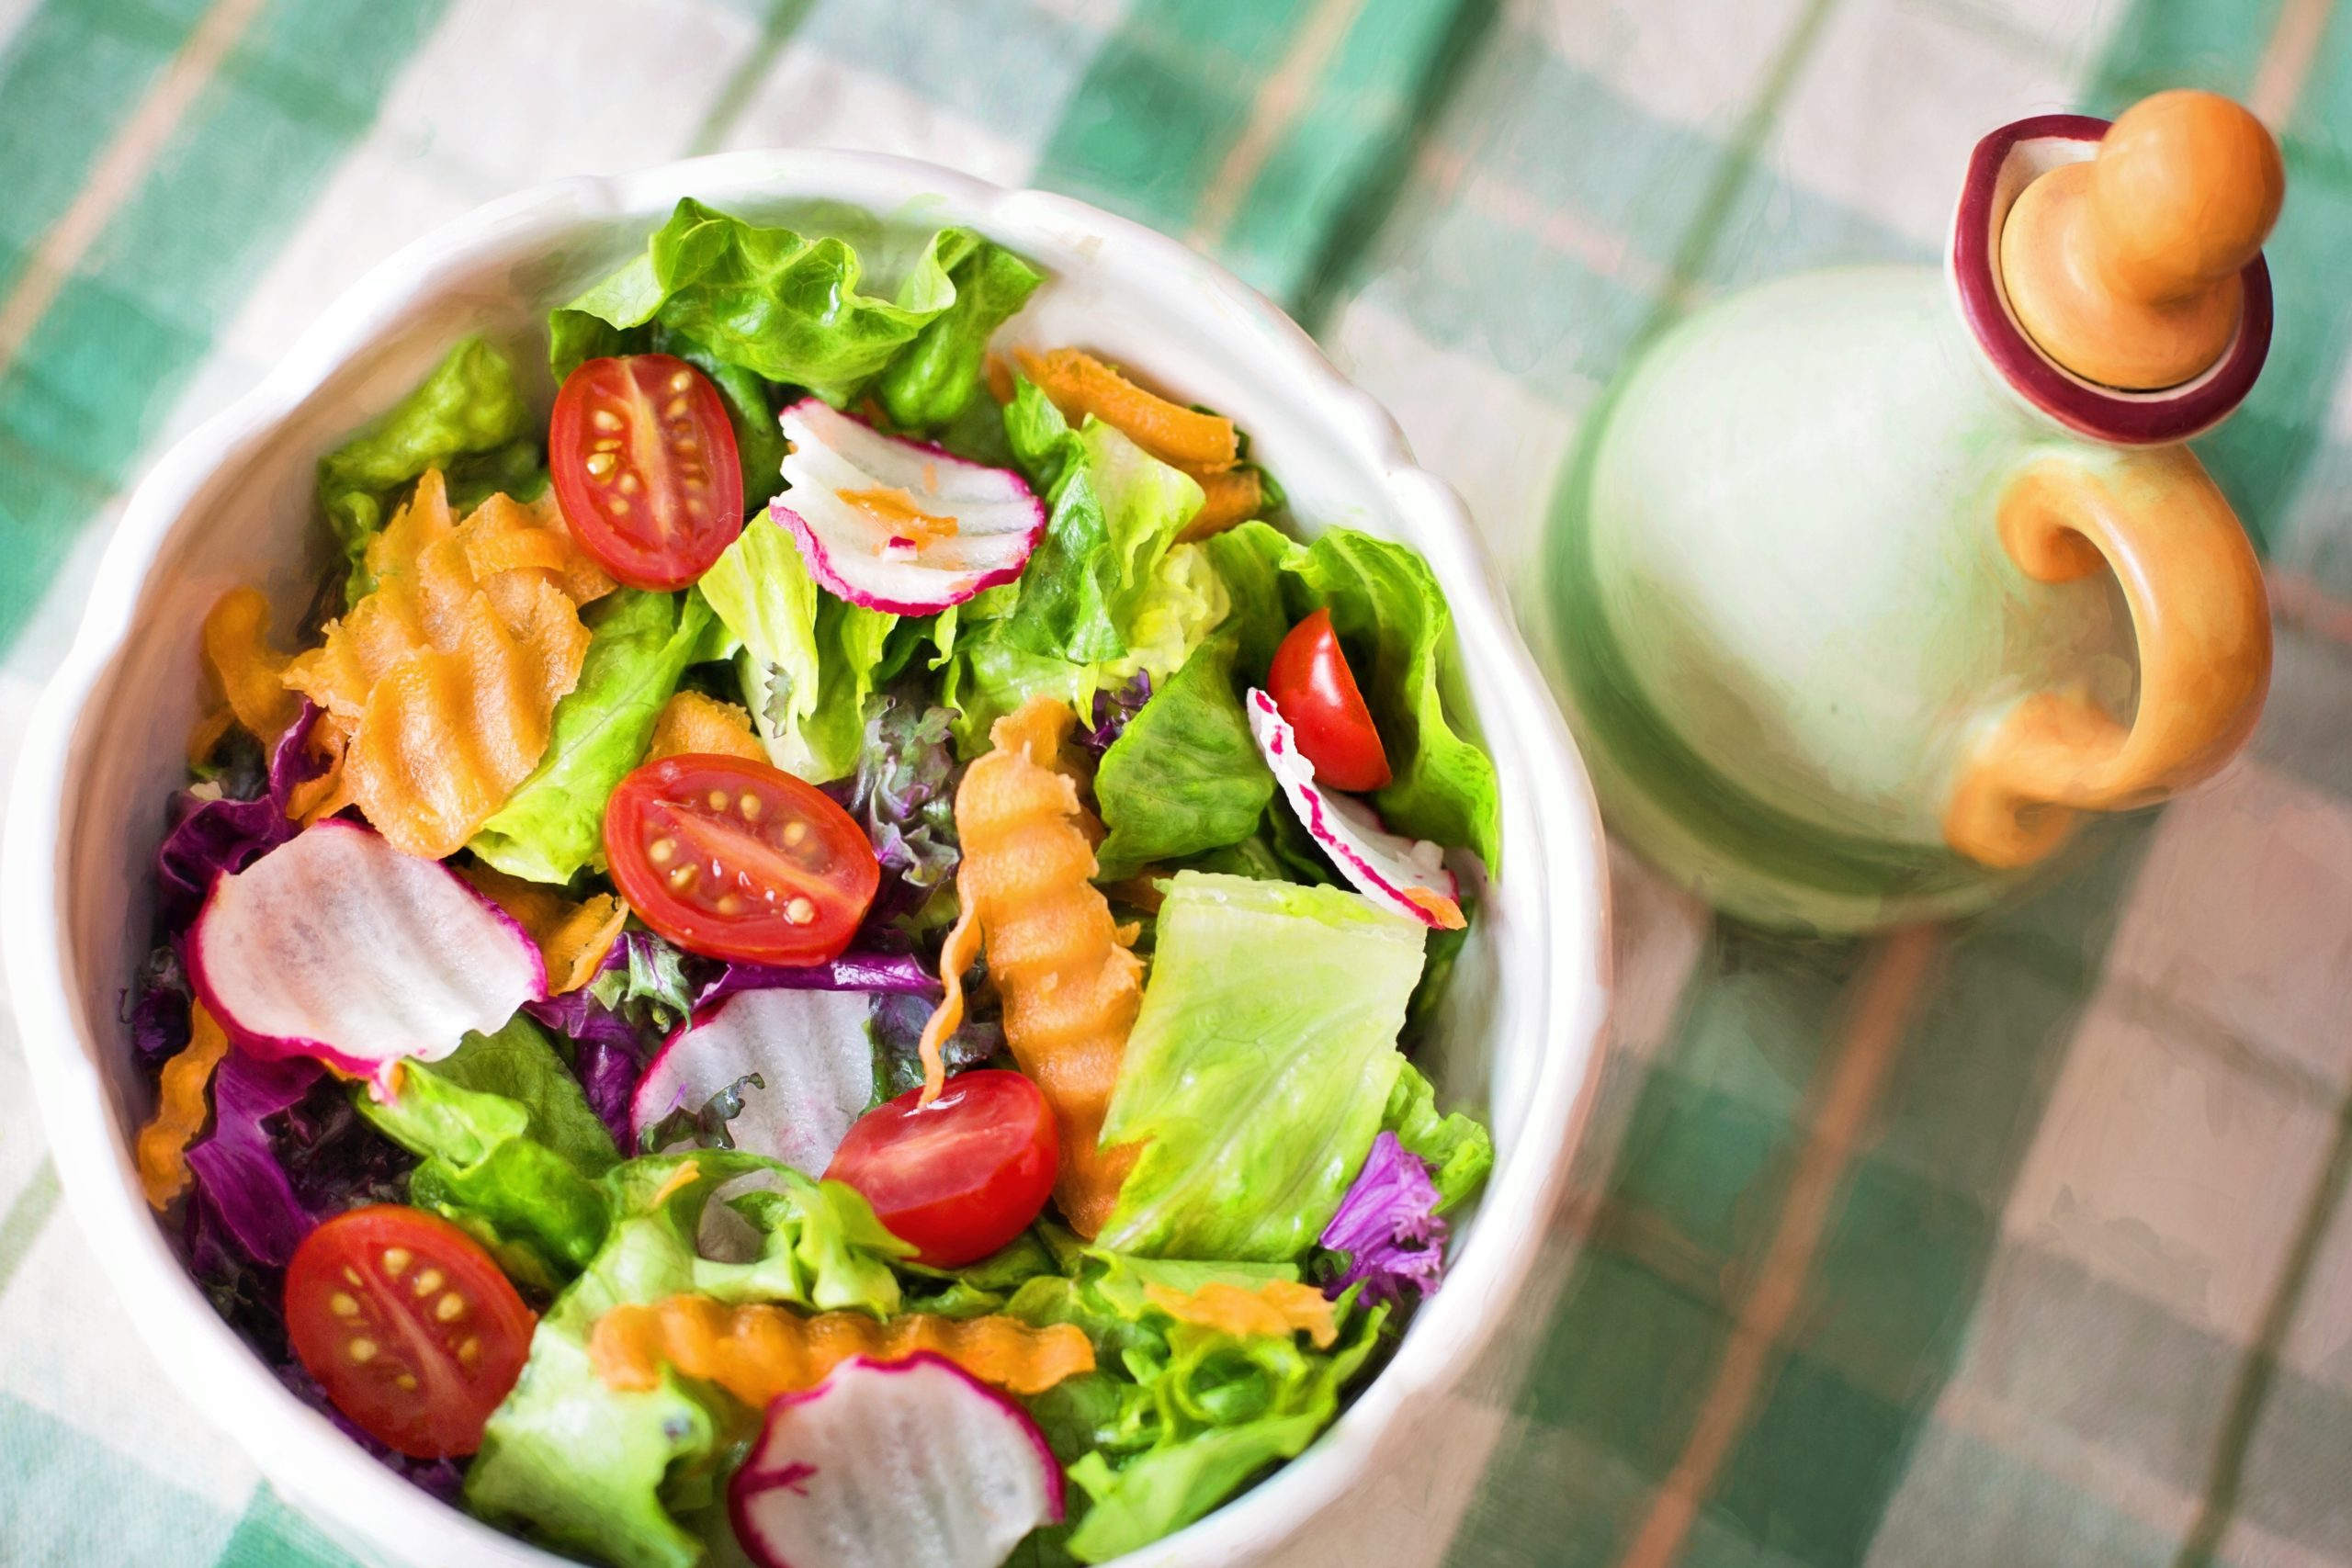 Healthy bowl of salad next to dressing